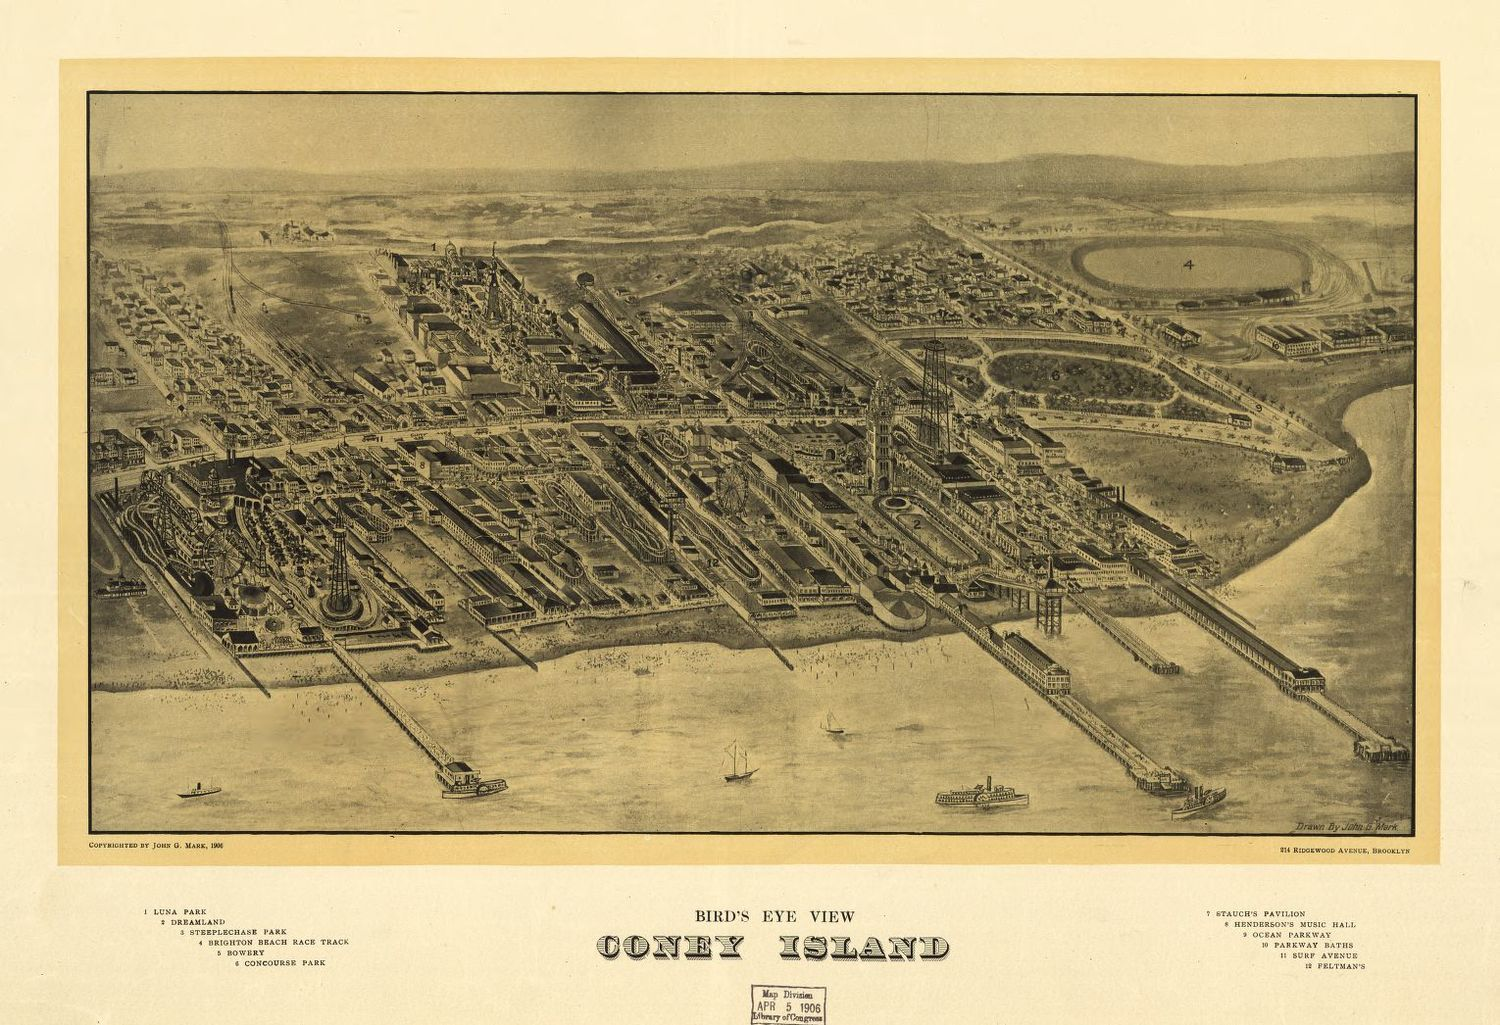 Antique Map Of Coney Island Vintage New York Wall Art Antique Maps - Framing a map print